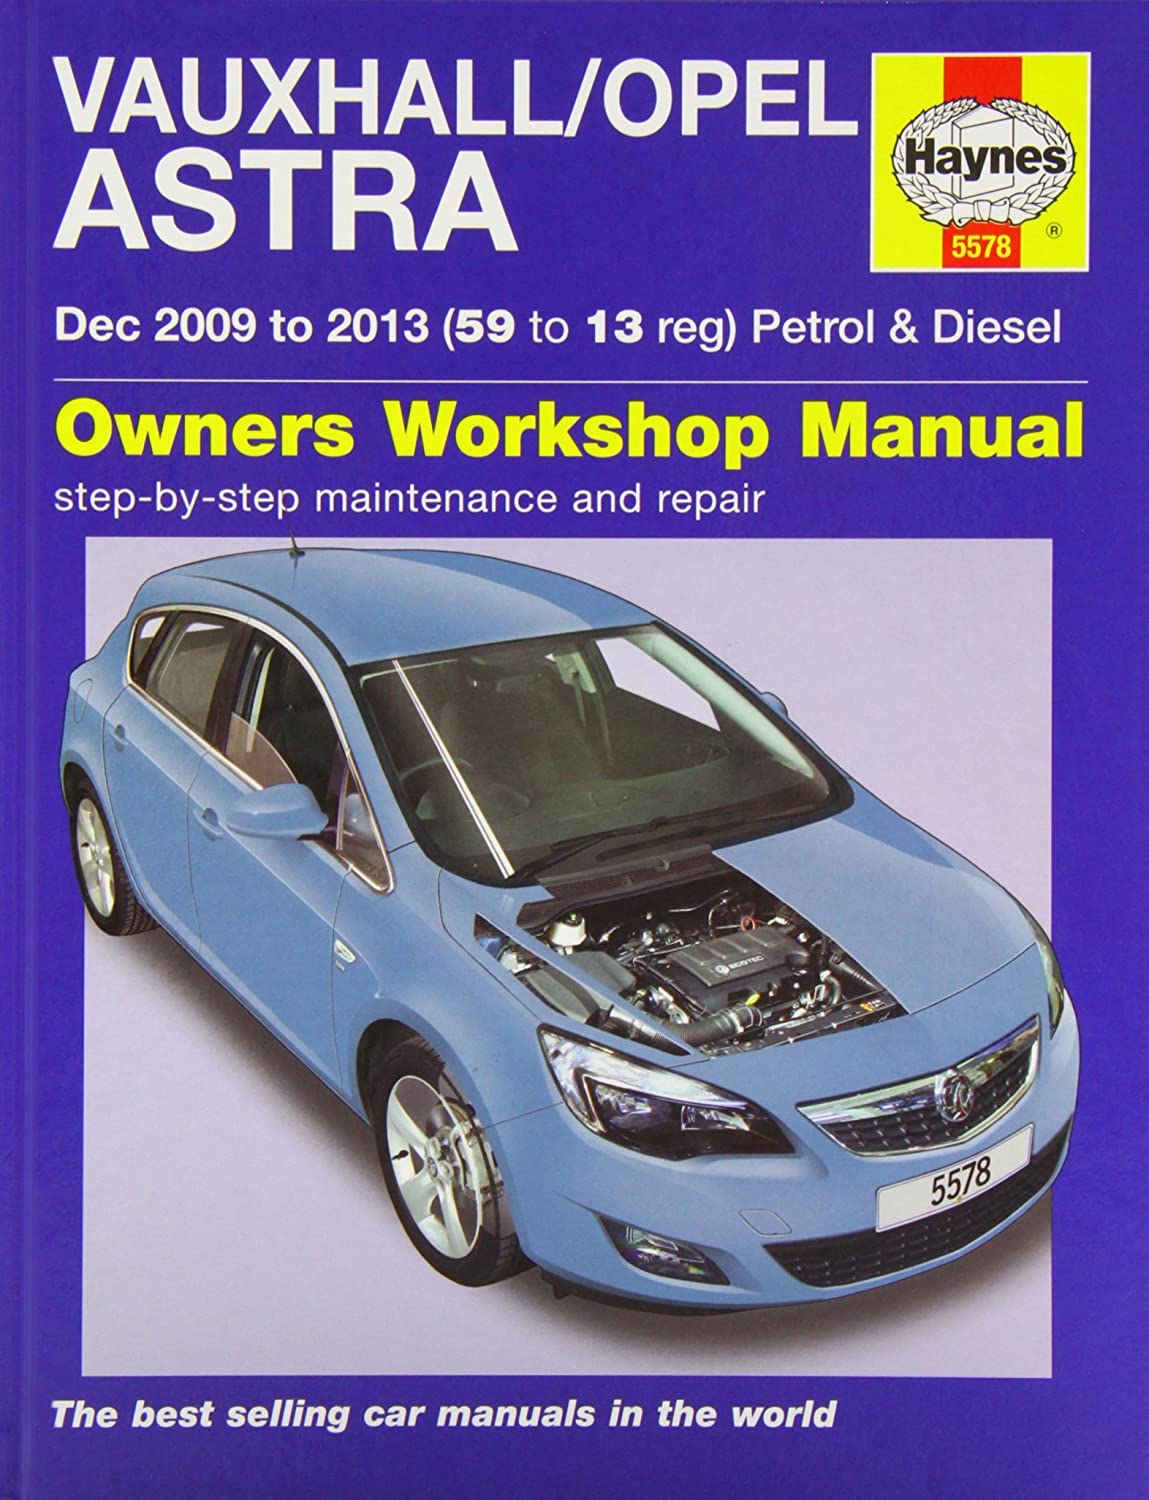 Vauxhall/Opel Astra (Dec 09 - 13) Haynes Repair Manual: Anon: Amazon.co.uk:  Car & Motorbike